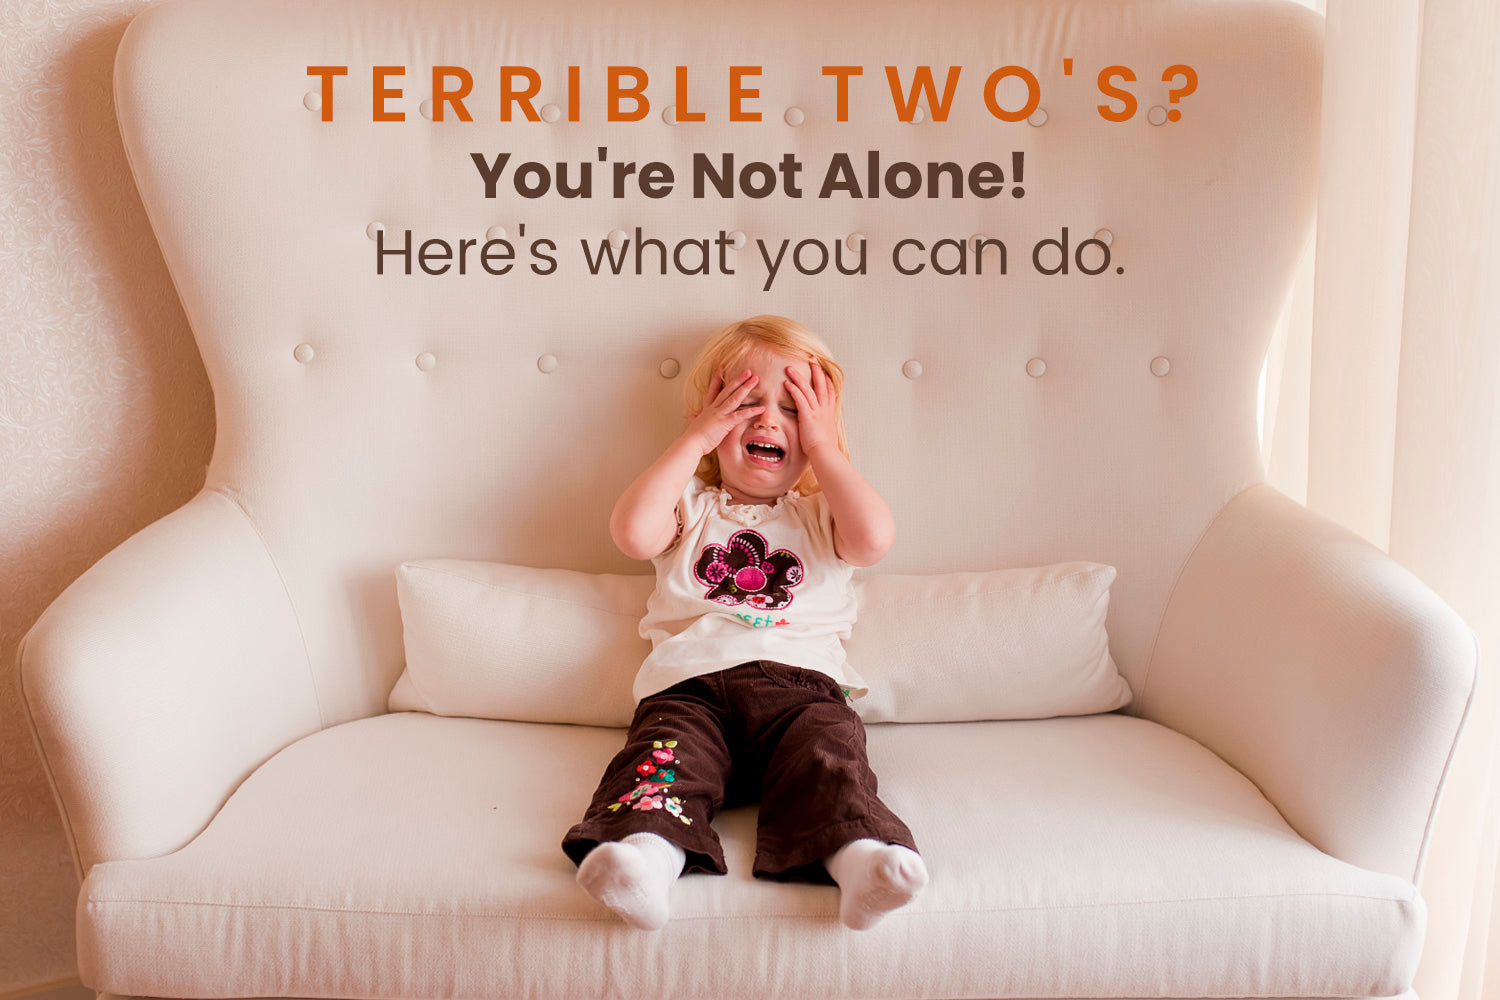 Terrible Twos: Why 2-Year-Olds Are Difficult